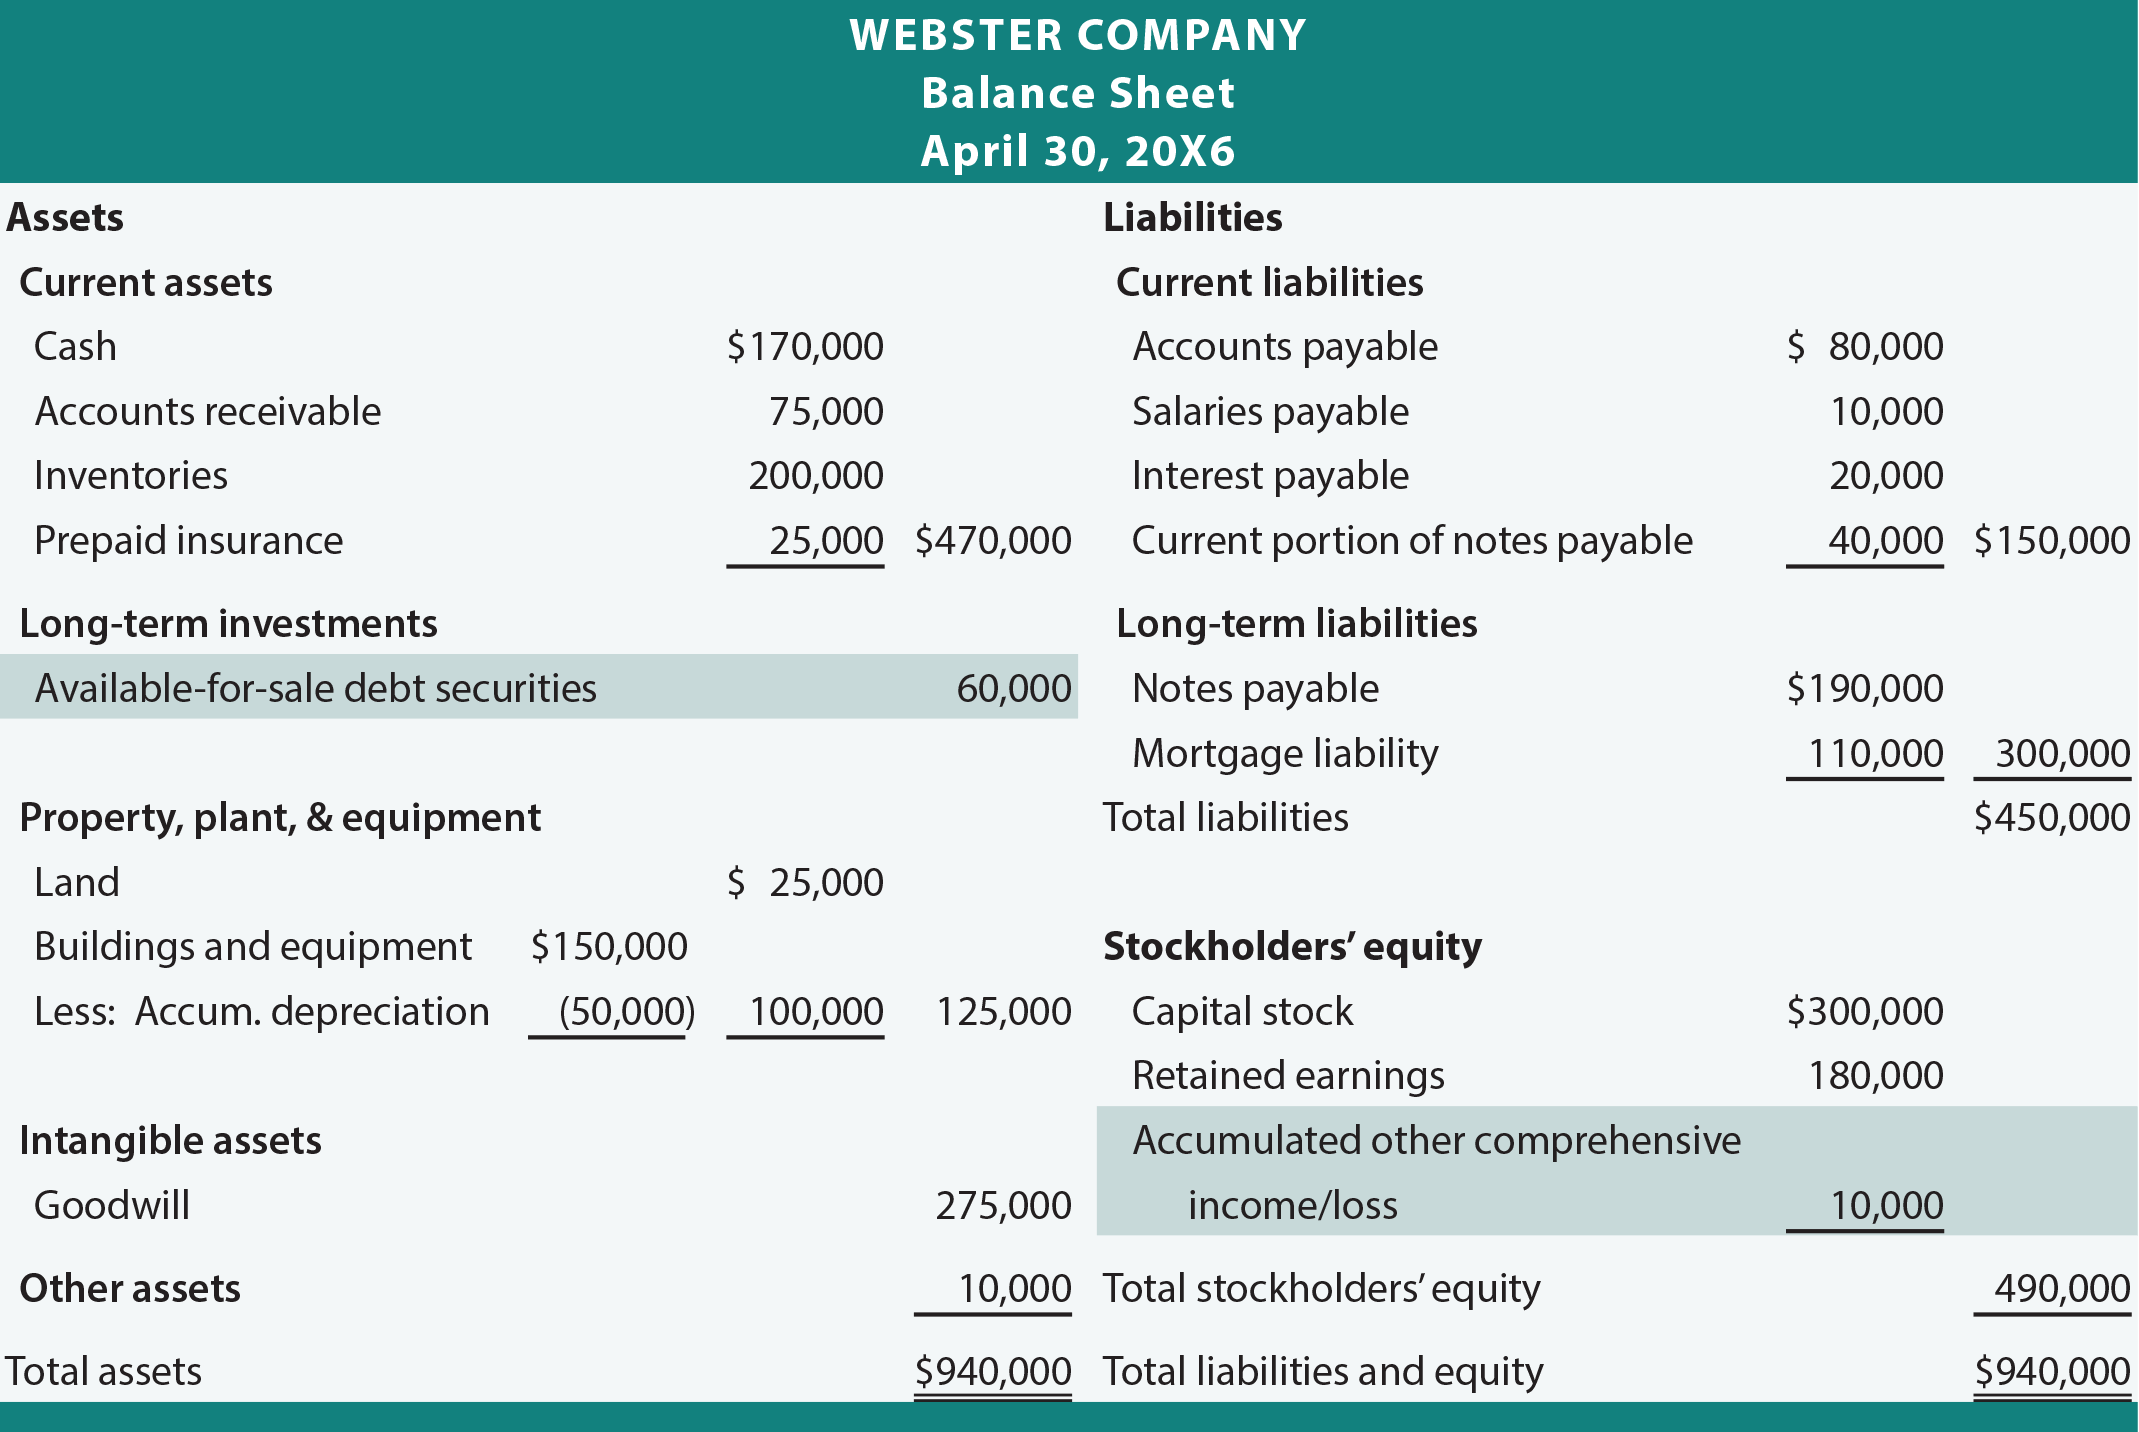 Webster Balance Sheet